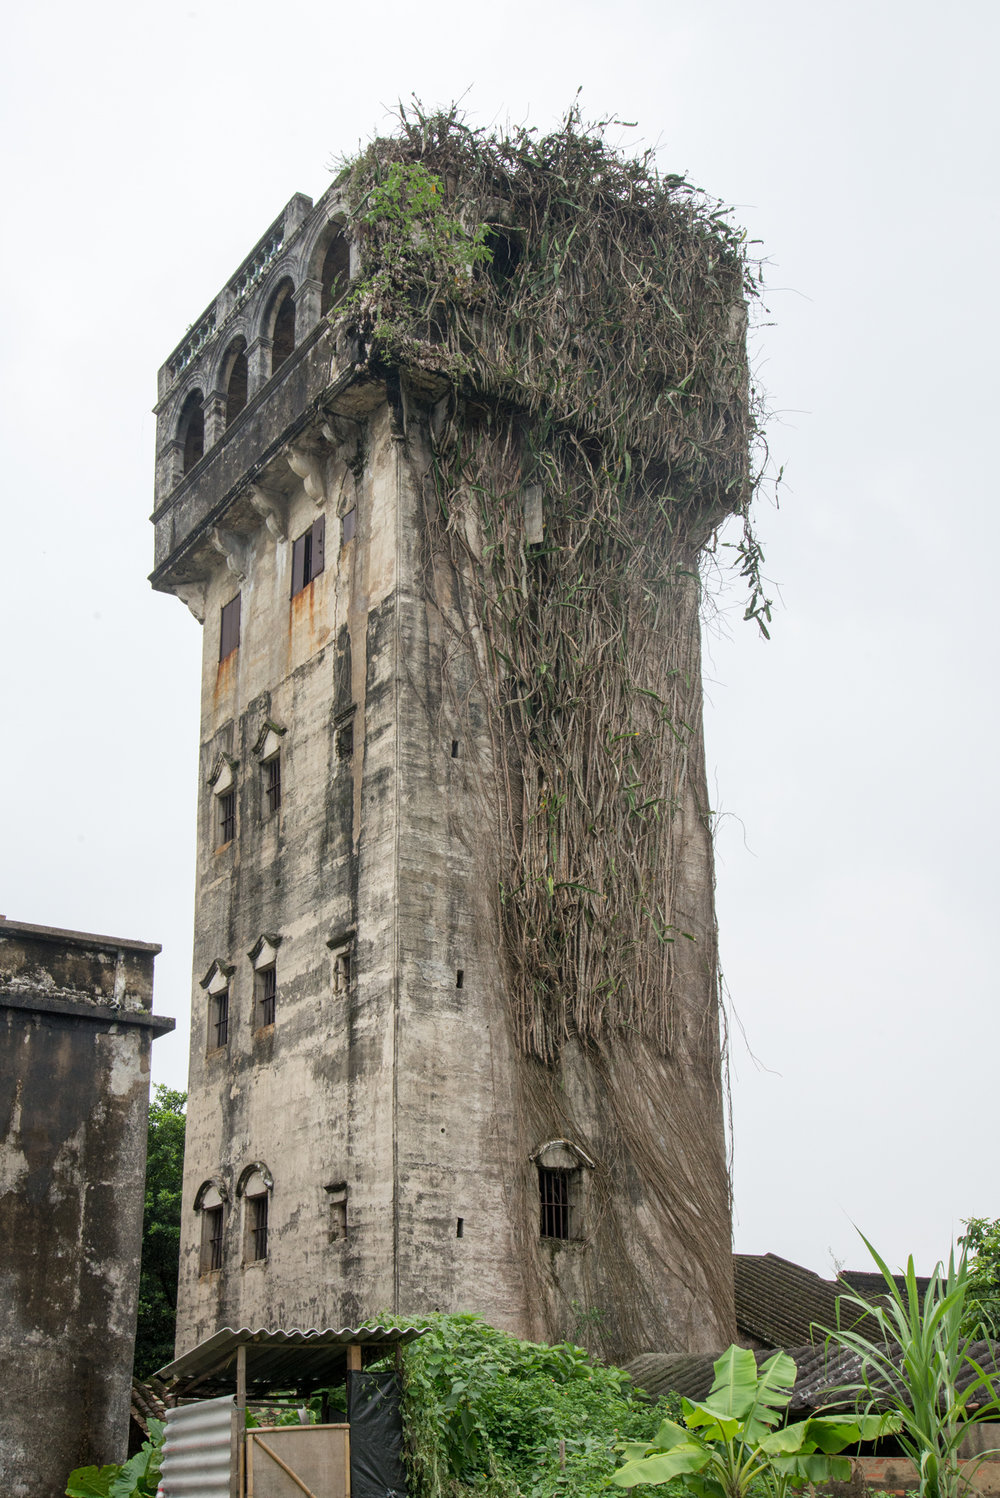 Diaolou Tower, Kaiping